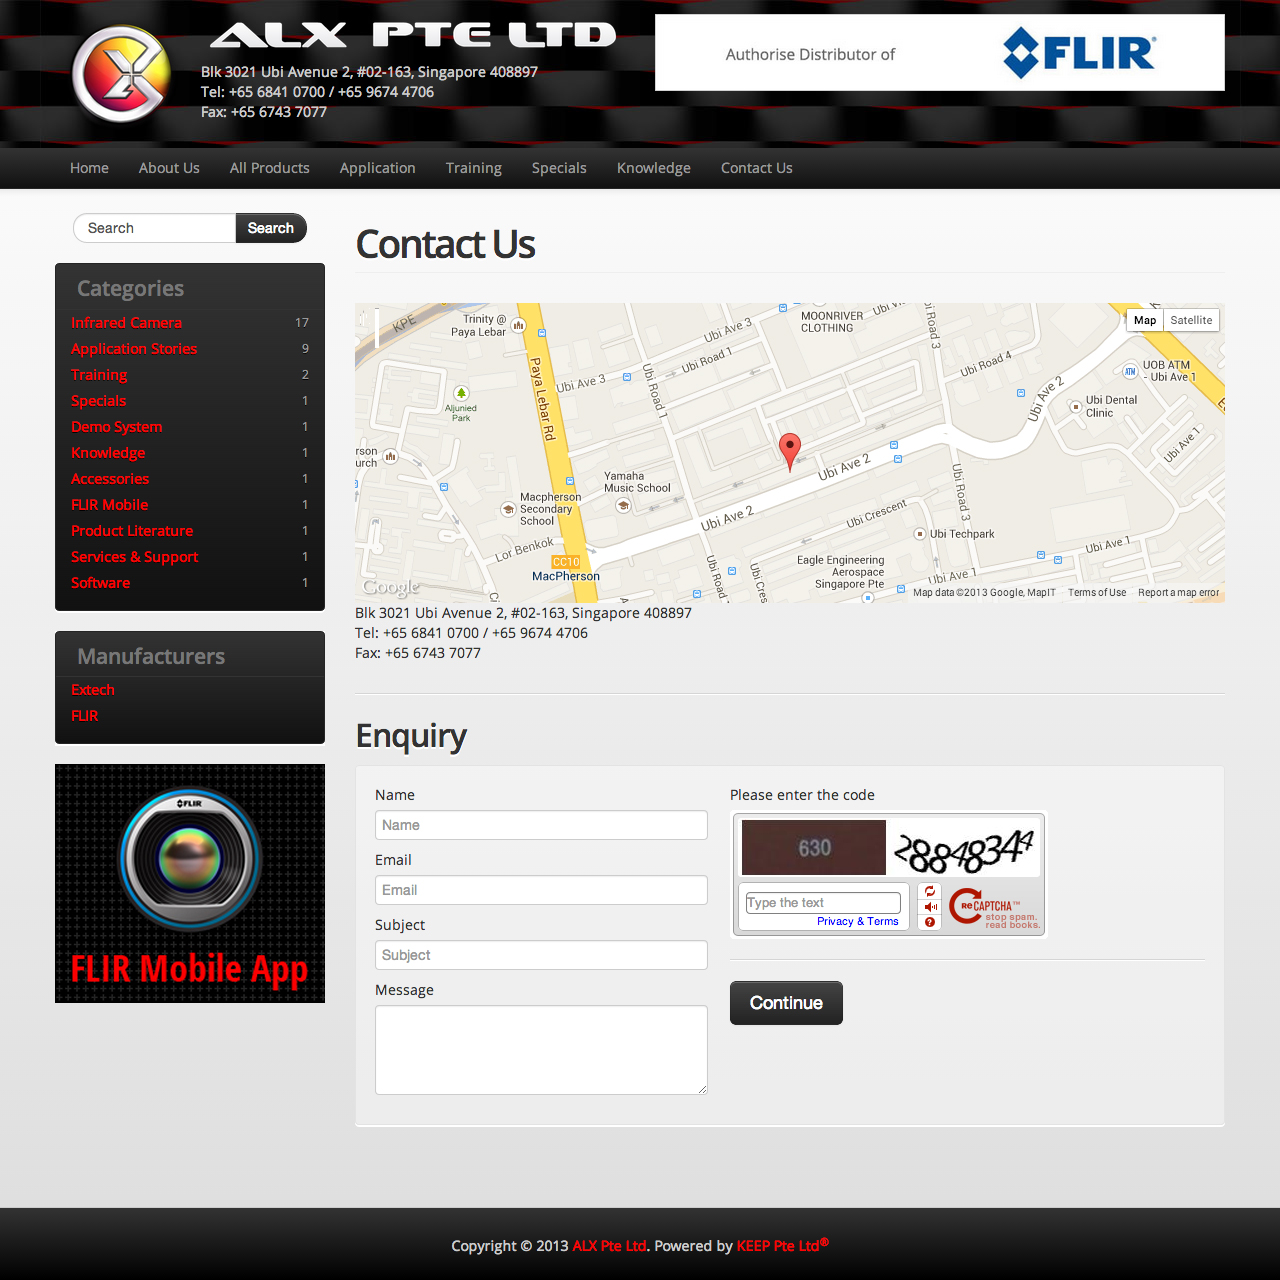 ALX Pte Ltd website contact us page